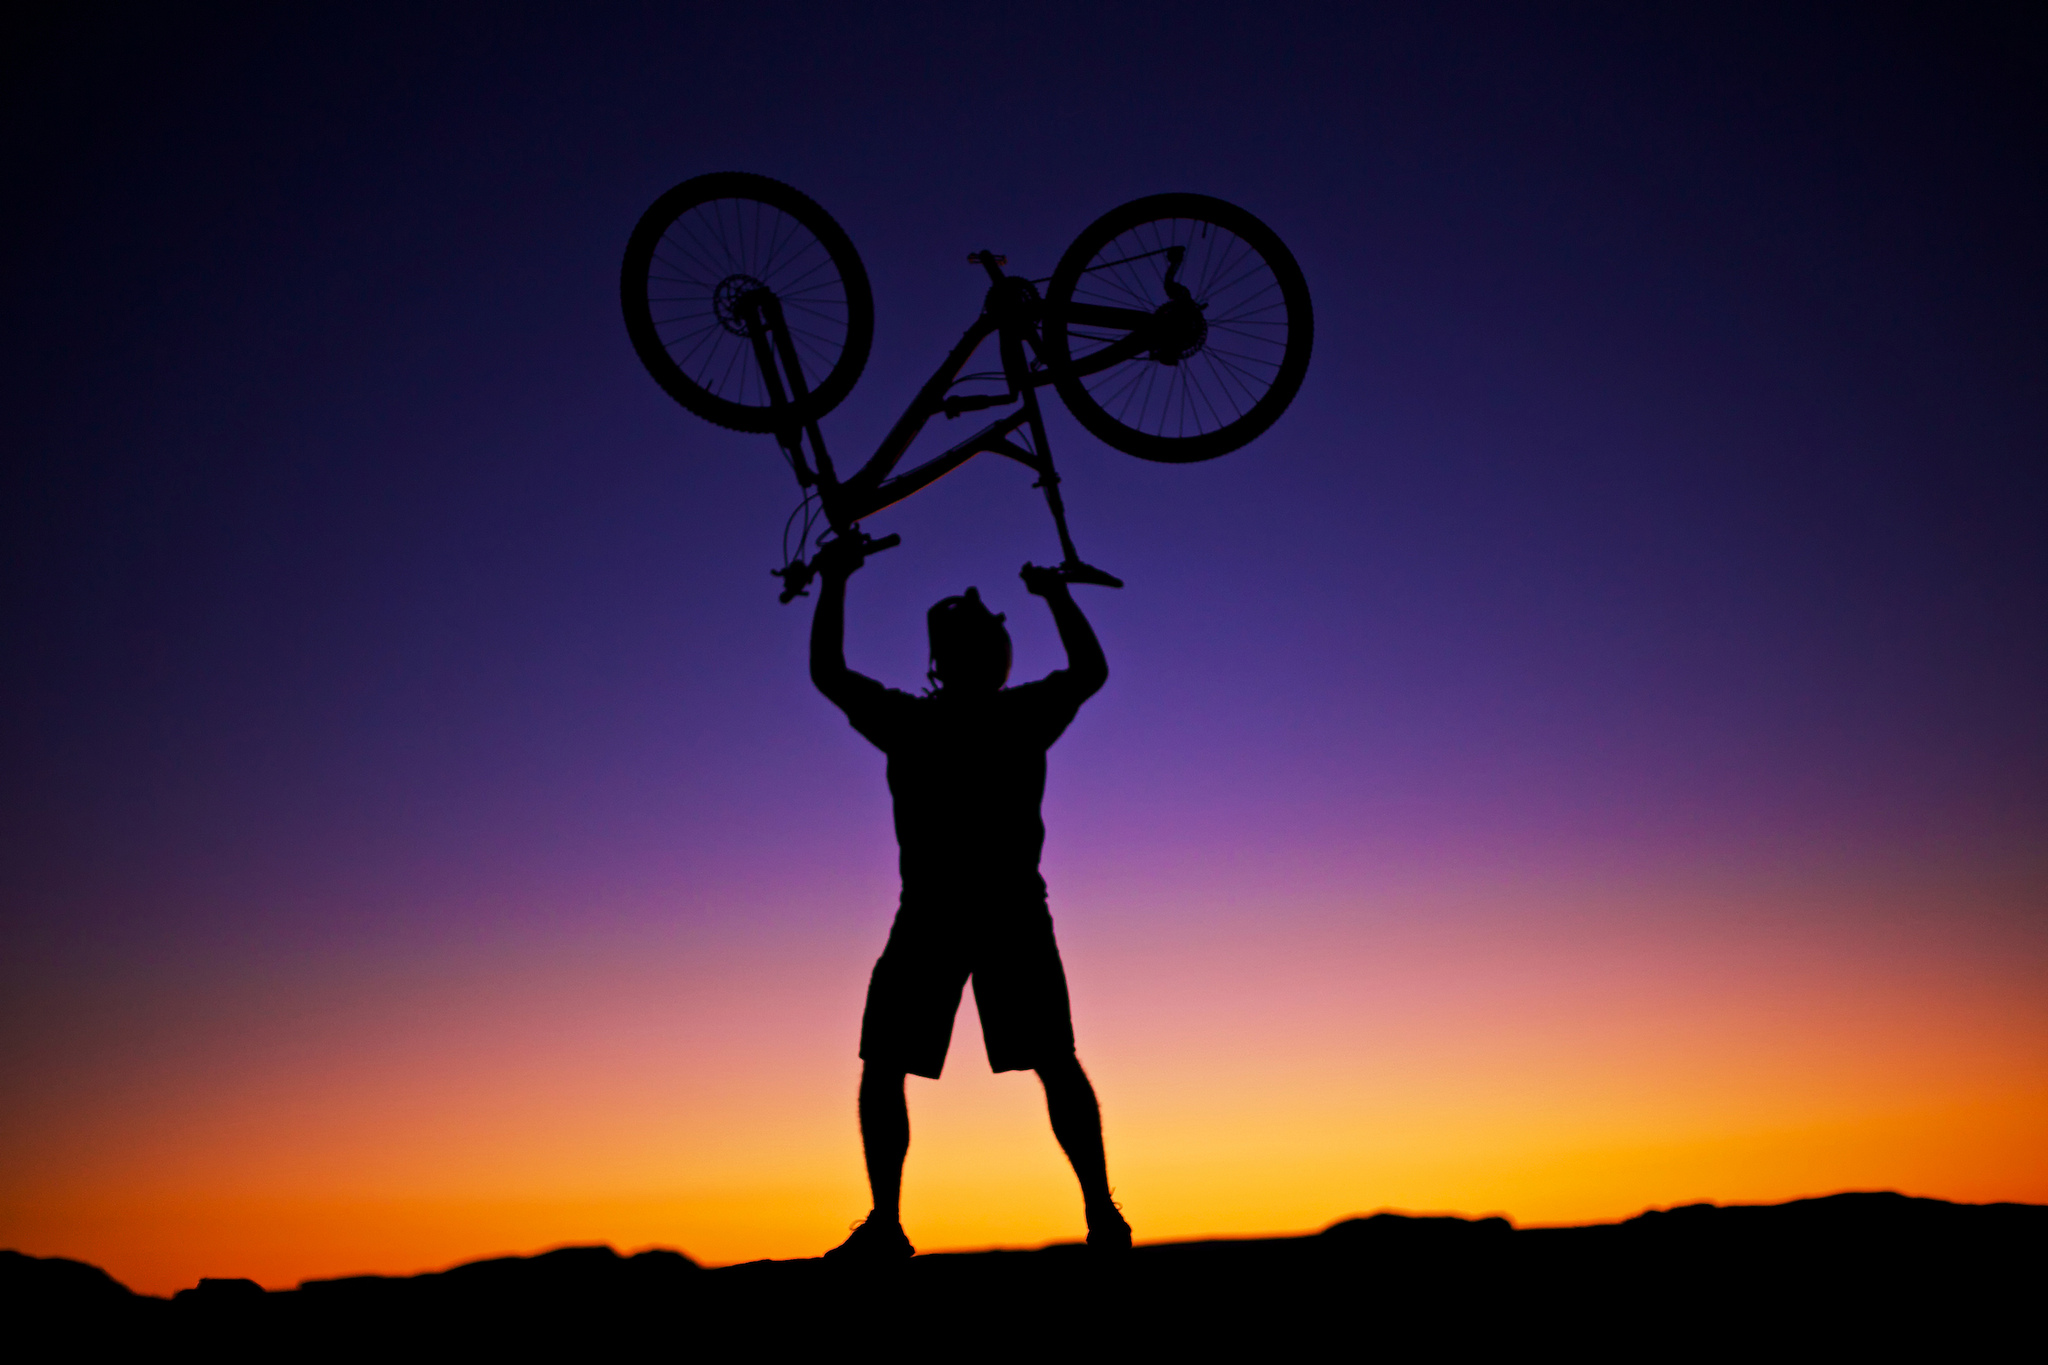 mountain biking, law - silhouette of person holding bicycle upside down over head